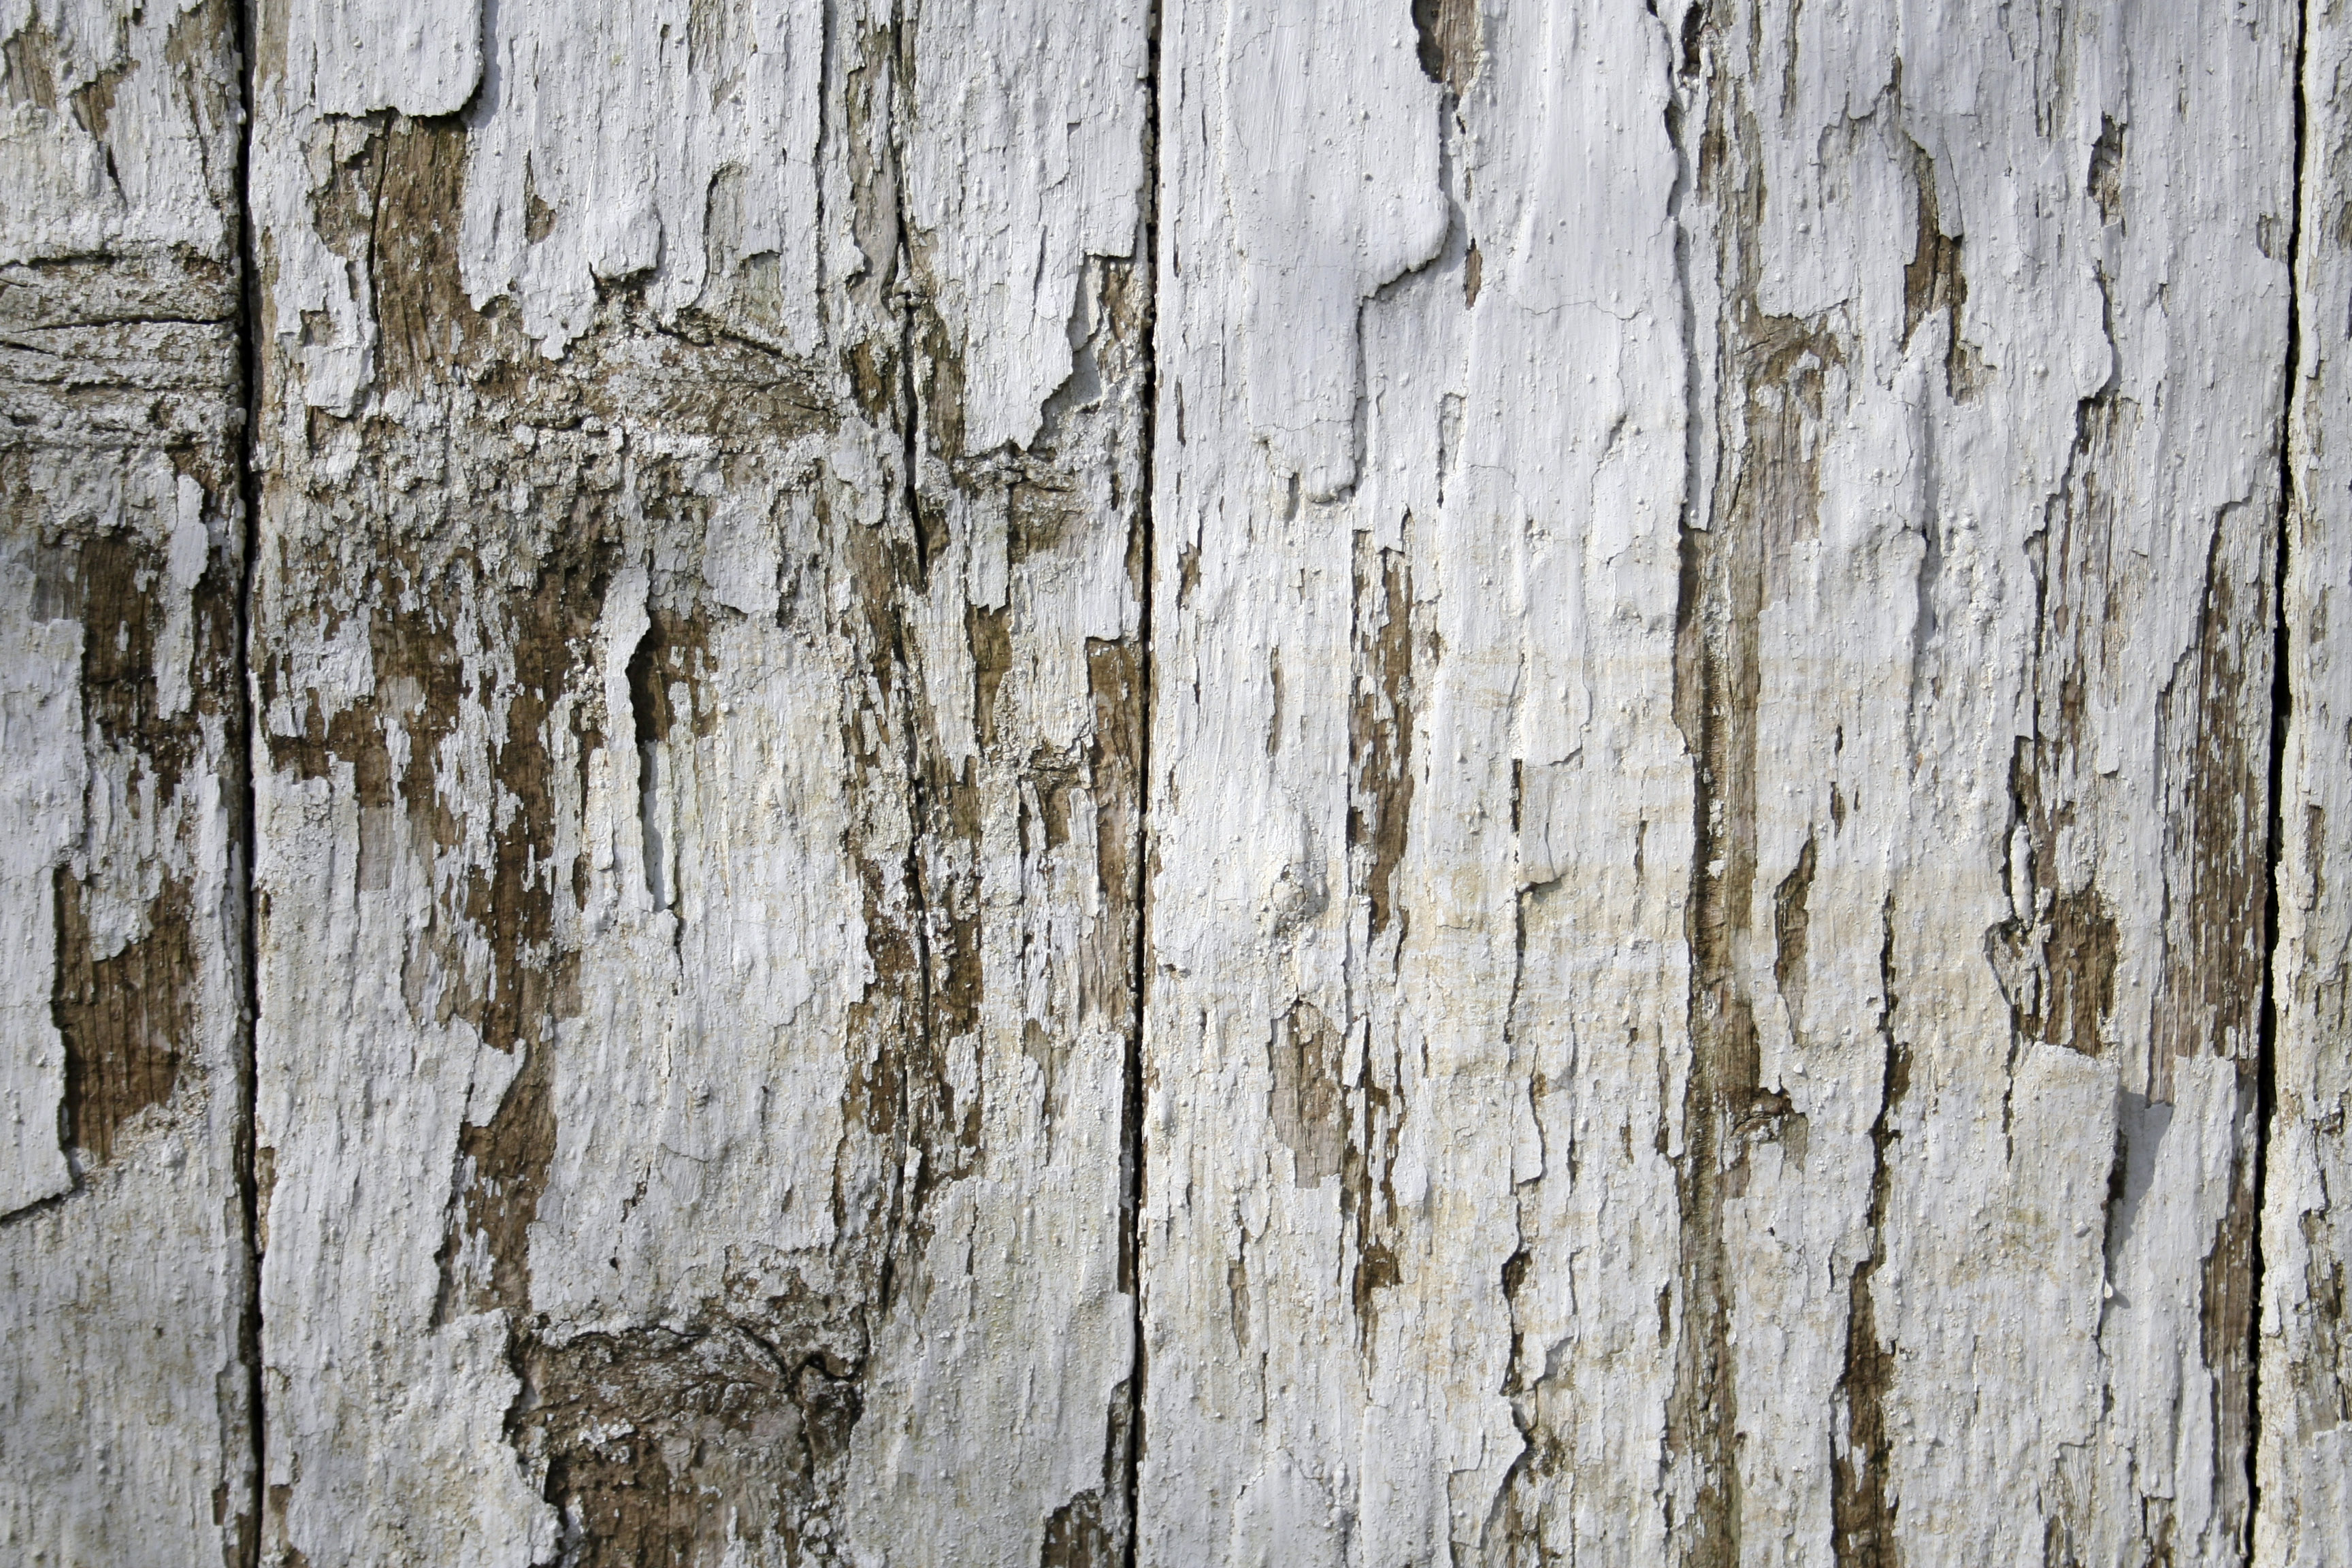 Wooden Post Texture download white wood fence texture | textures for photoshop free